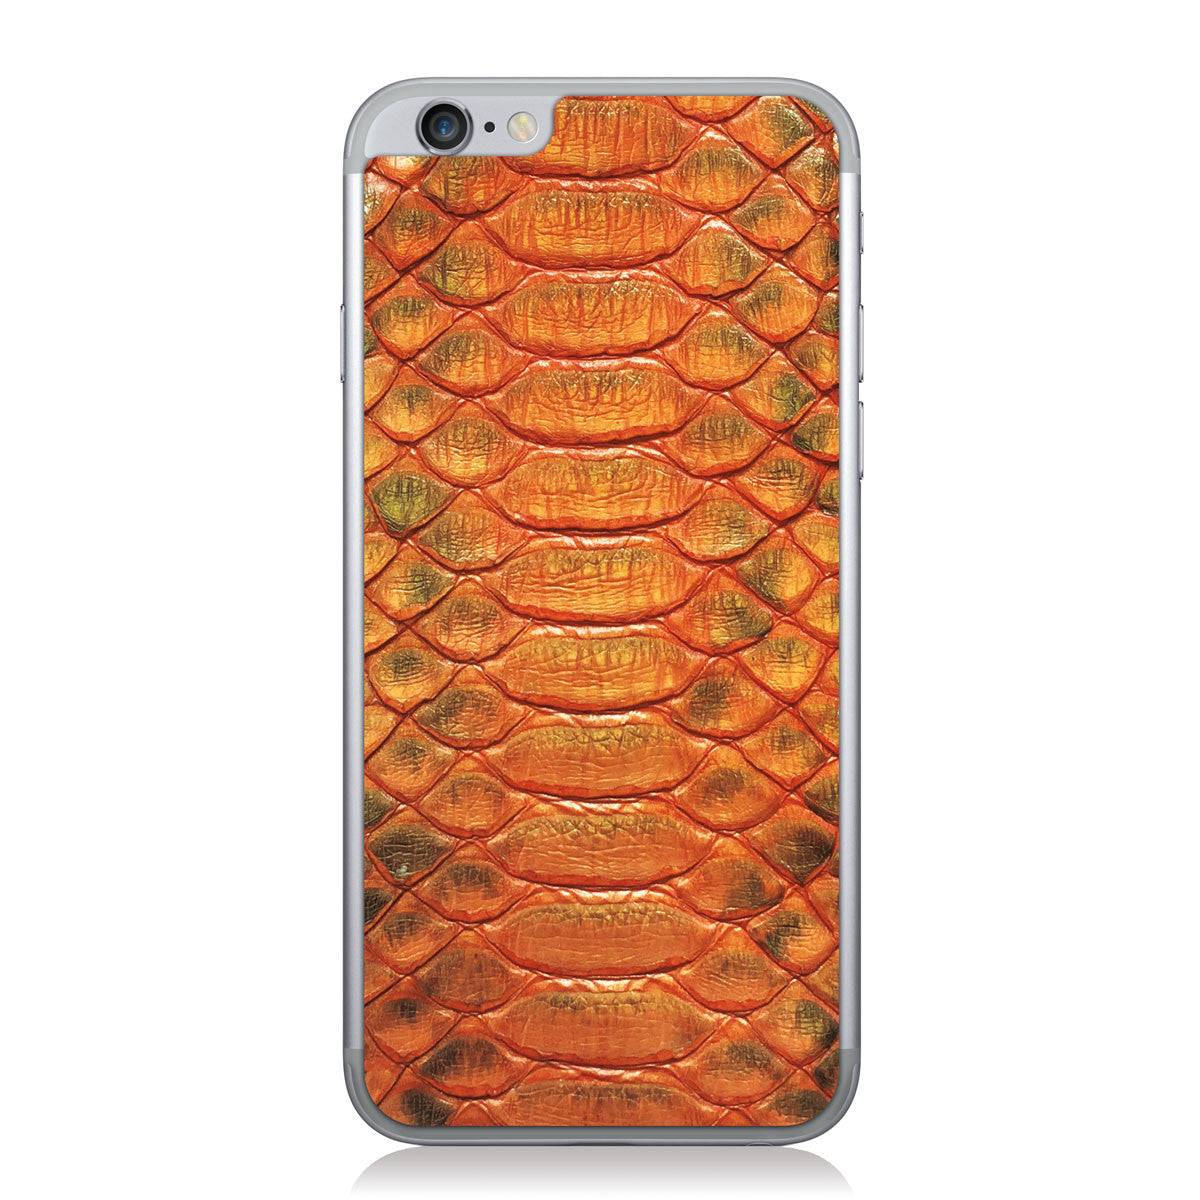 Hot Orange Python iPhone 6/6s Leather Skin